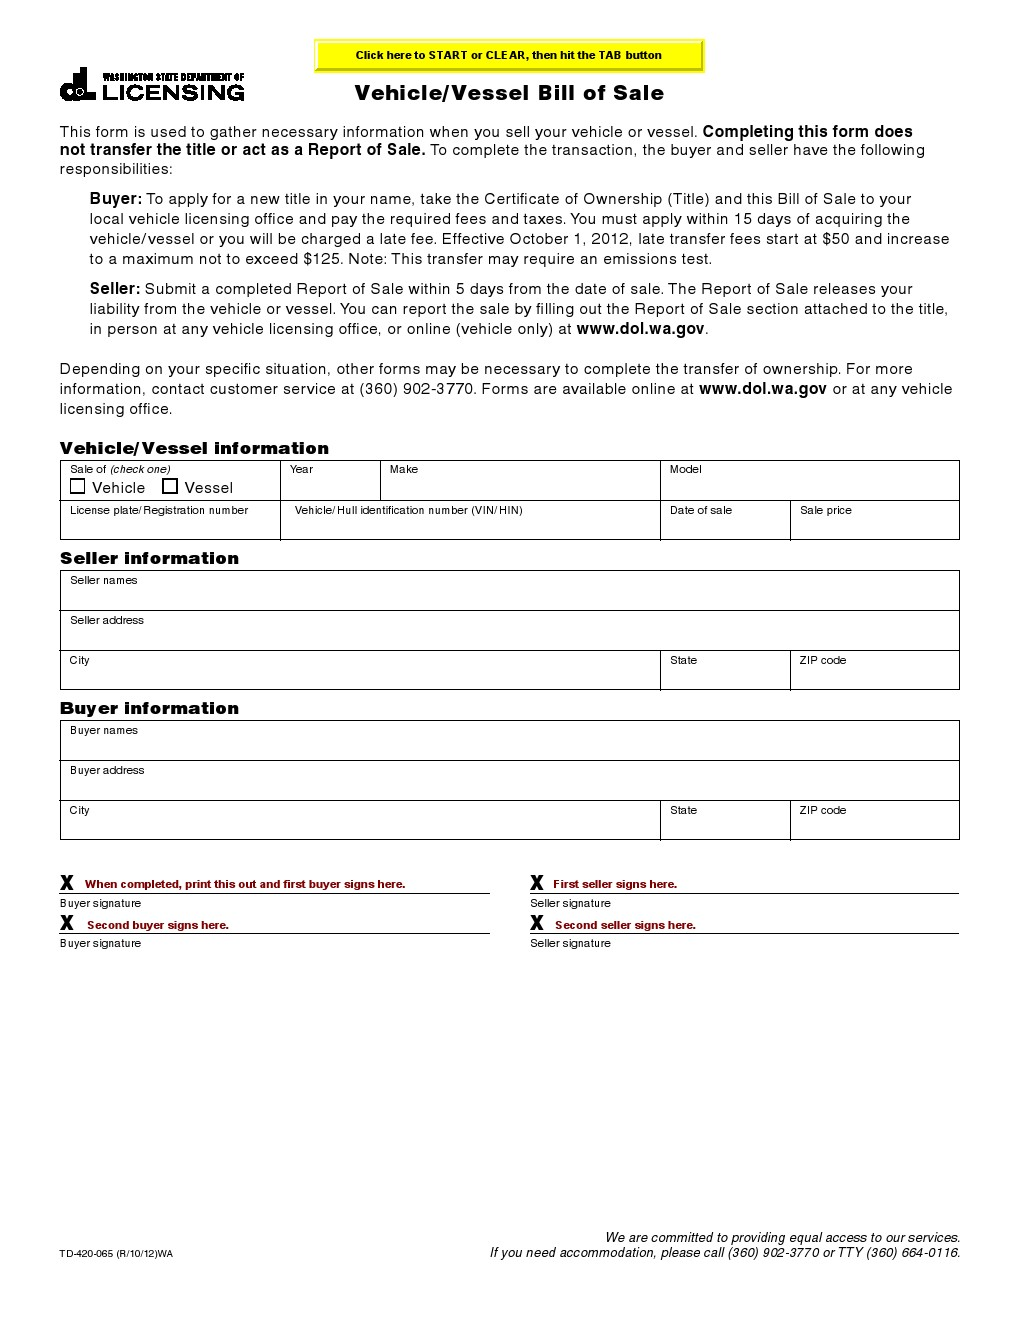 washington dol bill of sale Free Washington Vehicle, Vessel Bill of Sale Form - Download PDF | Word